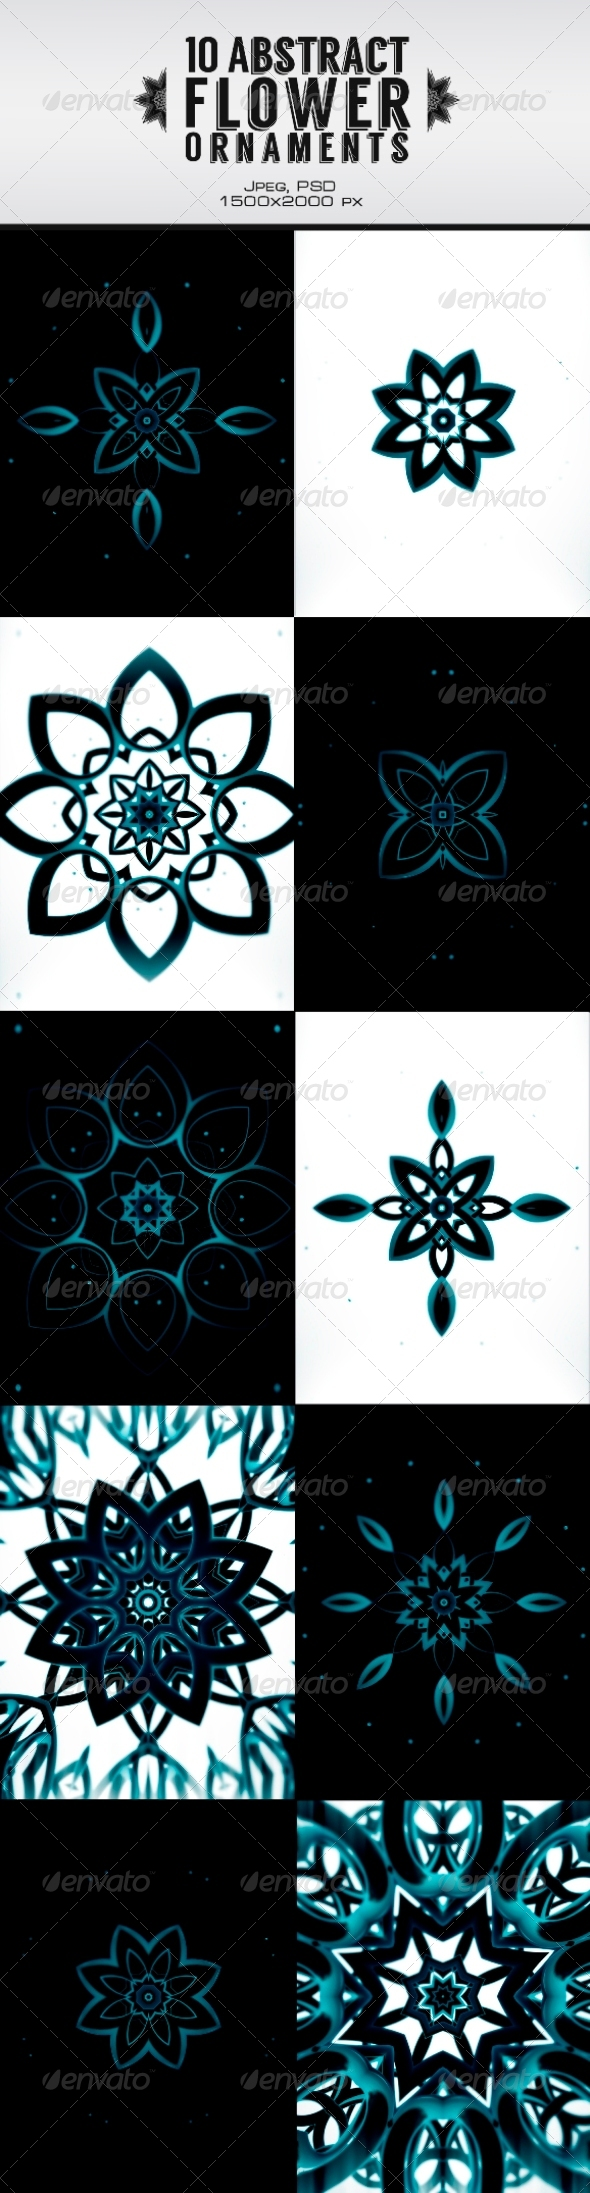 10 Abstract Flower Ornament - Patterns Backgrounds